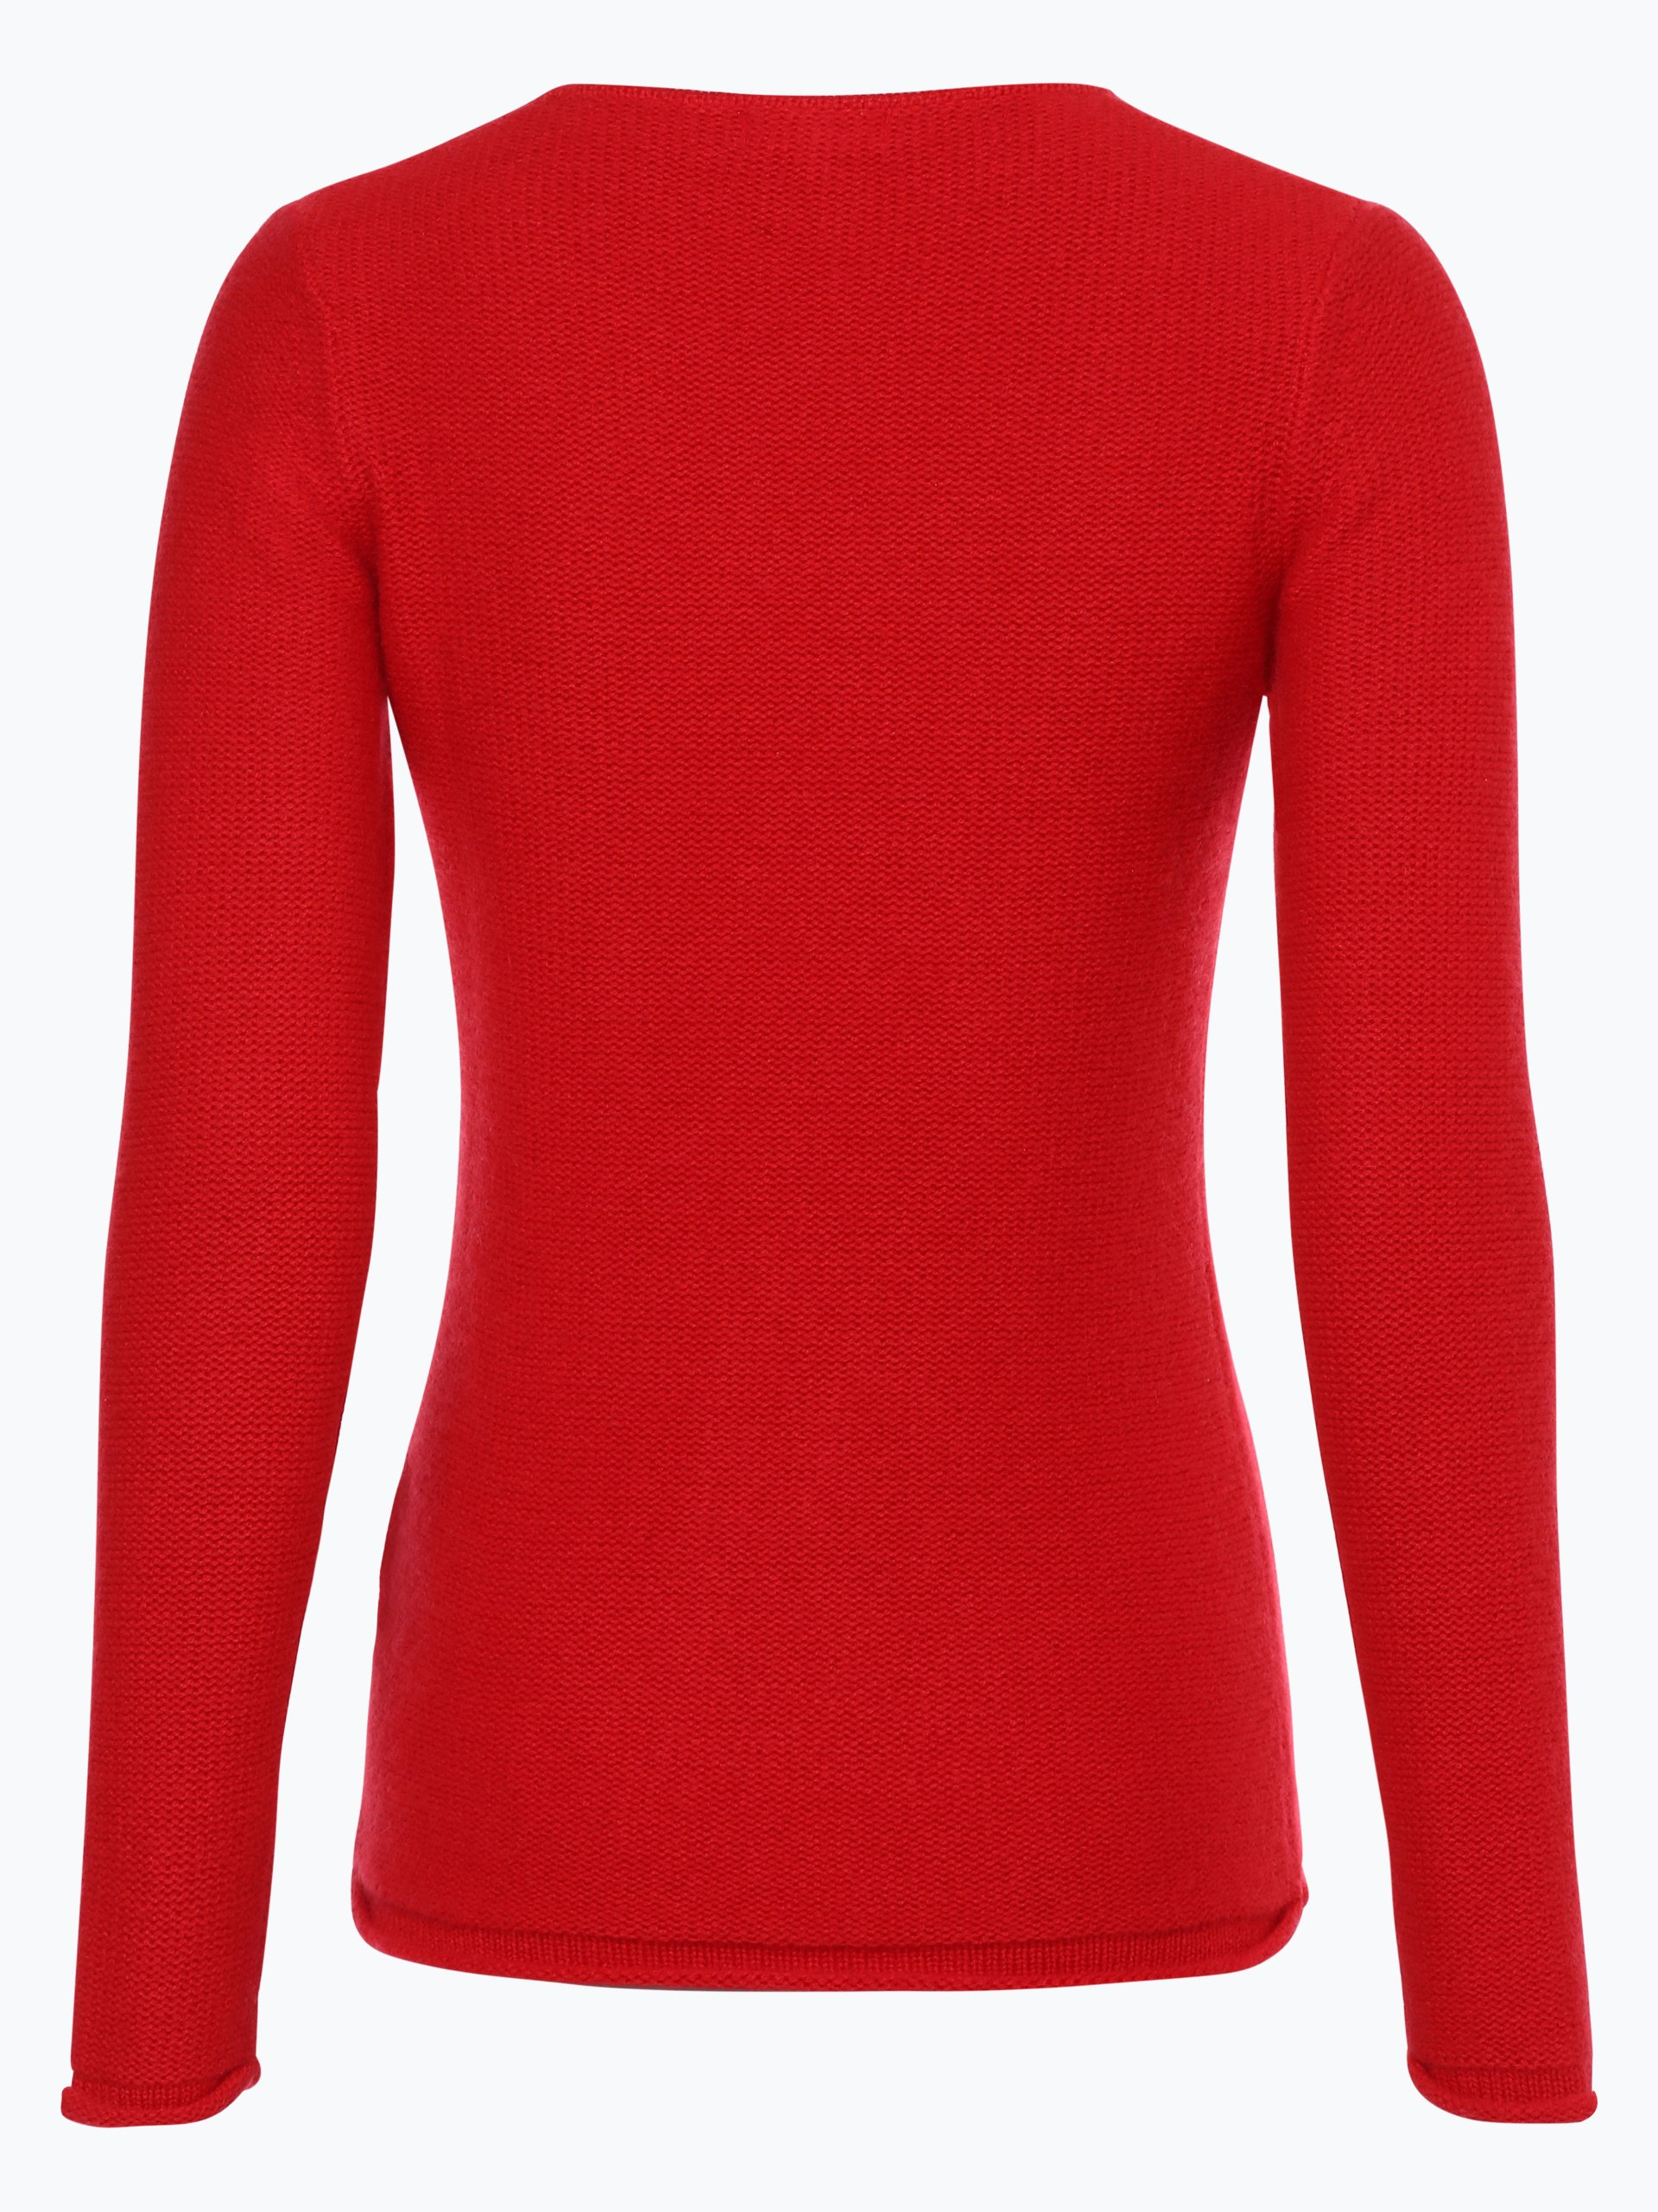 marie lund damen pure cashmere pullover rot uni online. Black Bedroom Furniture Sets. Home Design Ideas